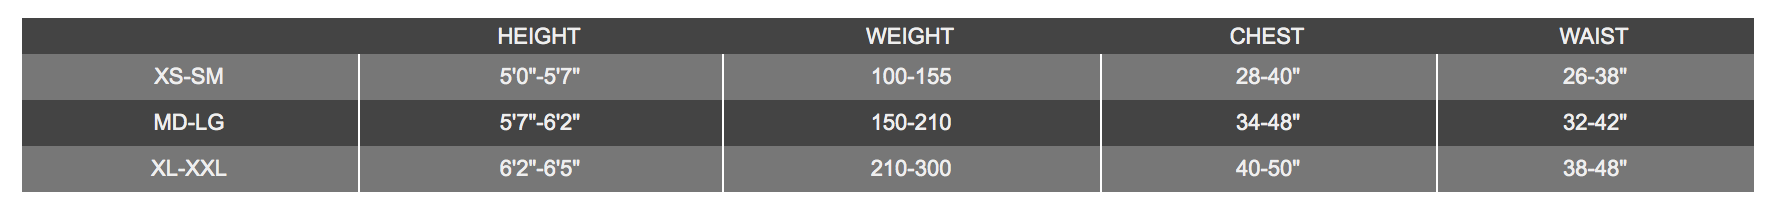 Size Chart for Elite 2 Harness